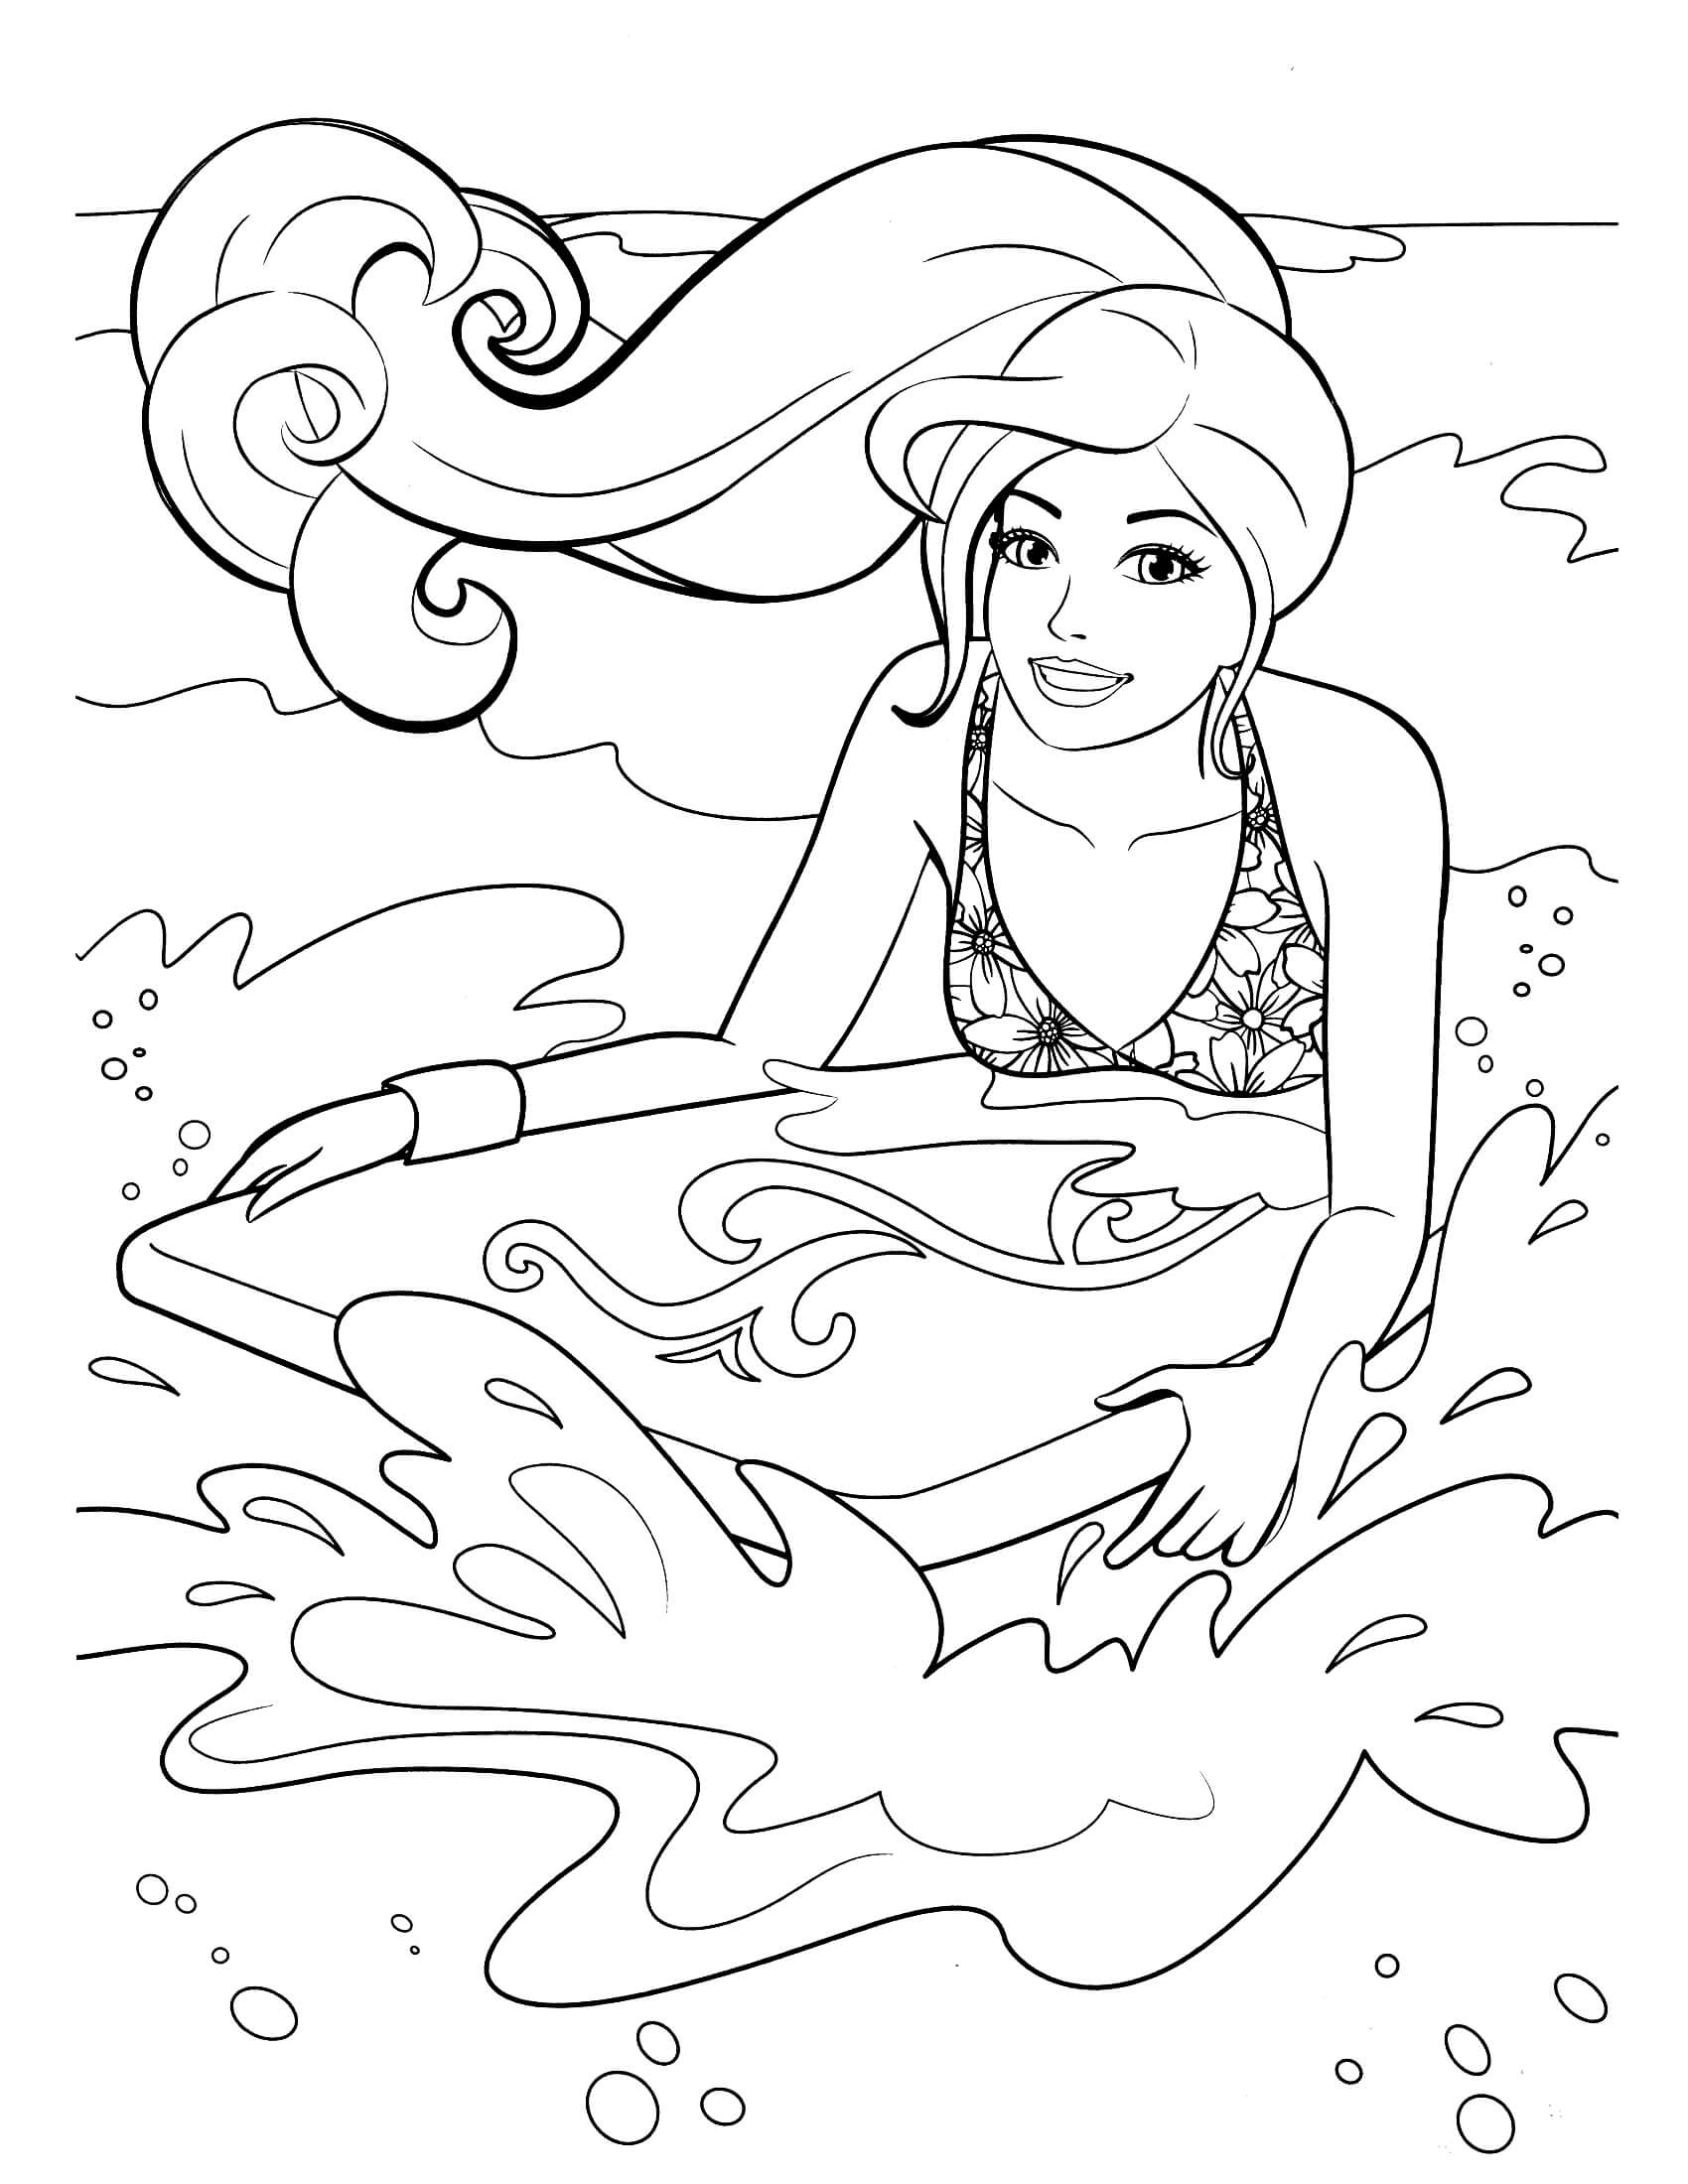 disney cars coloring pages - barbie coloring page 23